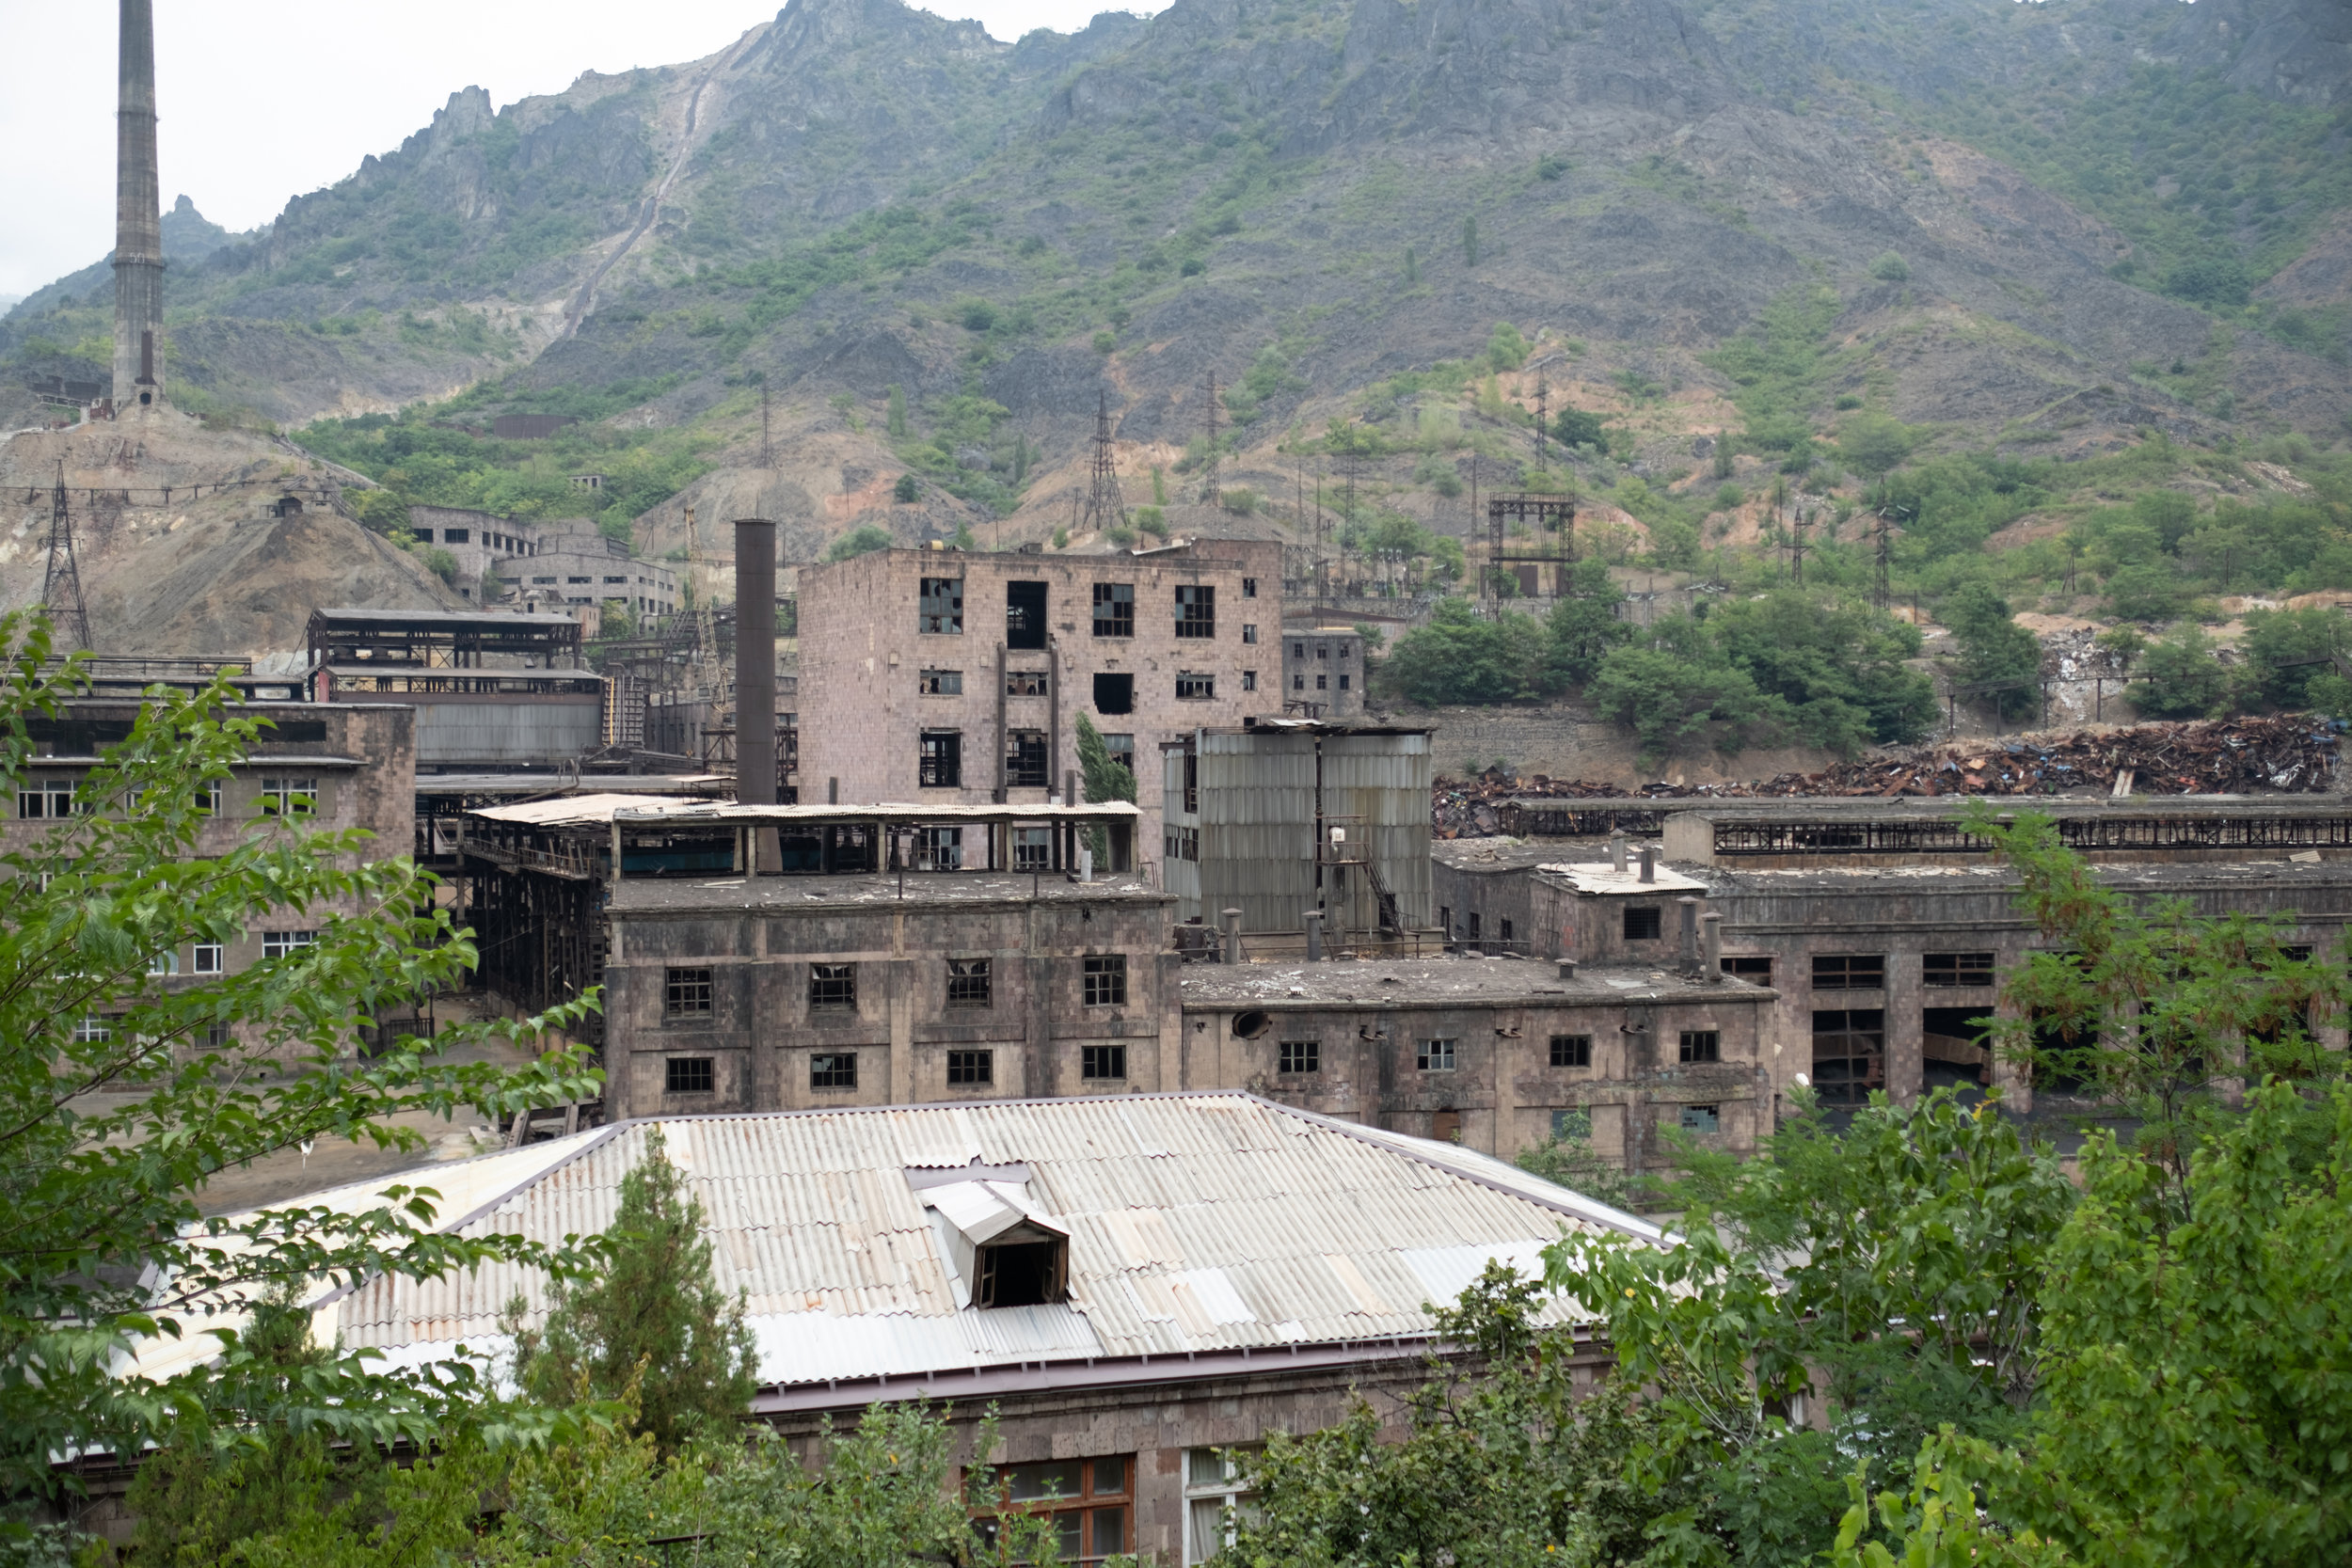 An old factory in the Debed Valley of Armenia